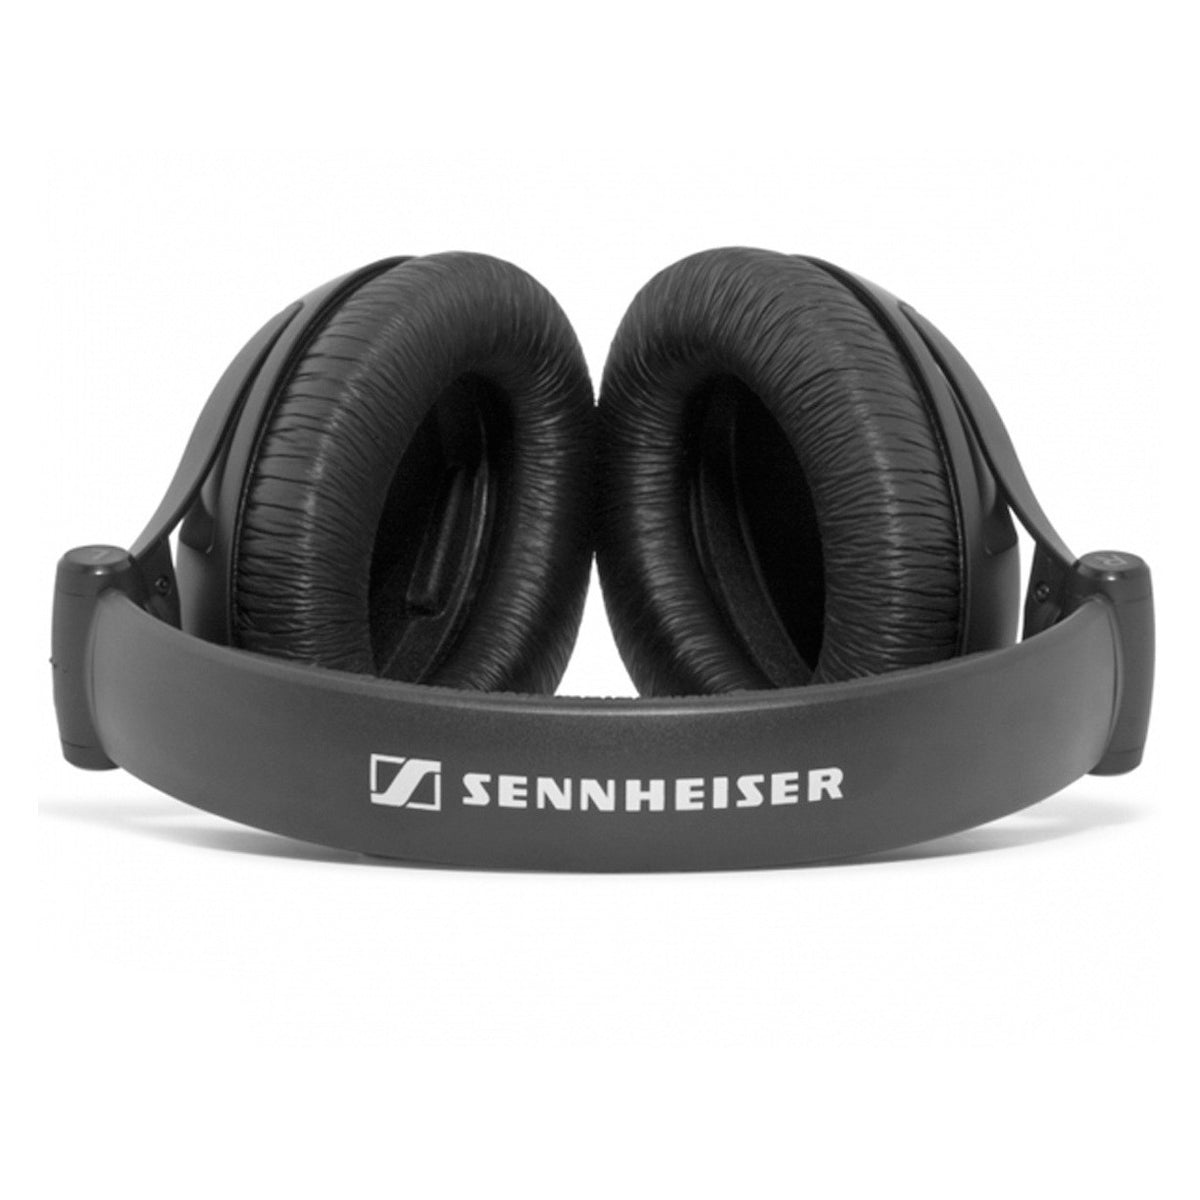 Sennheiser: HD 380 Pro Over-Ear Headphones